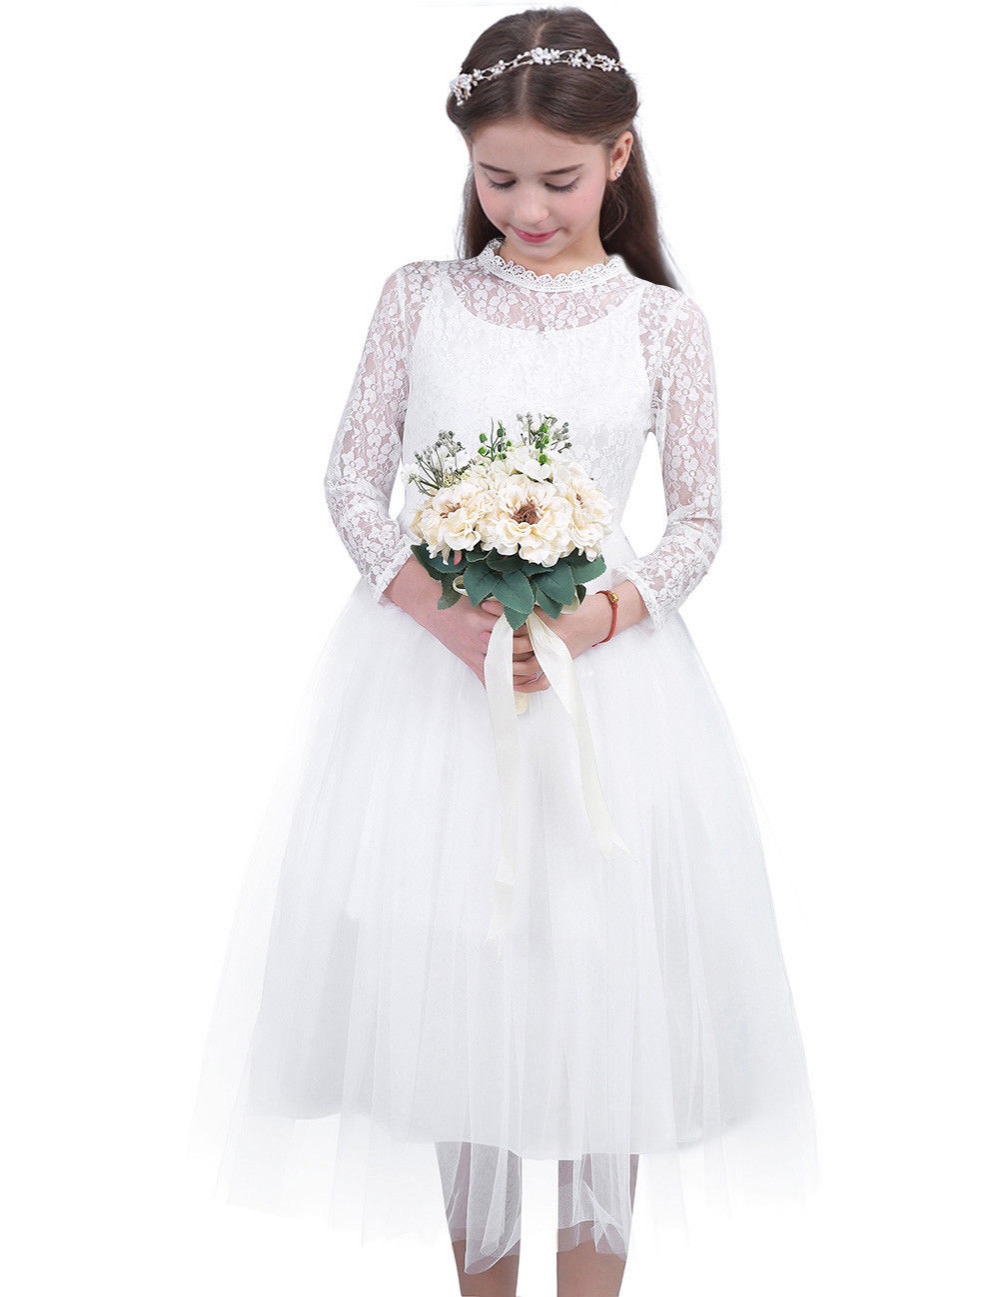 Flower Girl Princess Dress Kids Birthday Party Wedding Pageant Lace Formal Dress Long Sleeve First Communion Dresses for Girls kids girls long sleeve white girl flower dress pageant wedding party formal occasion bridesmaid wedding girls tulle dress